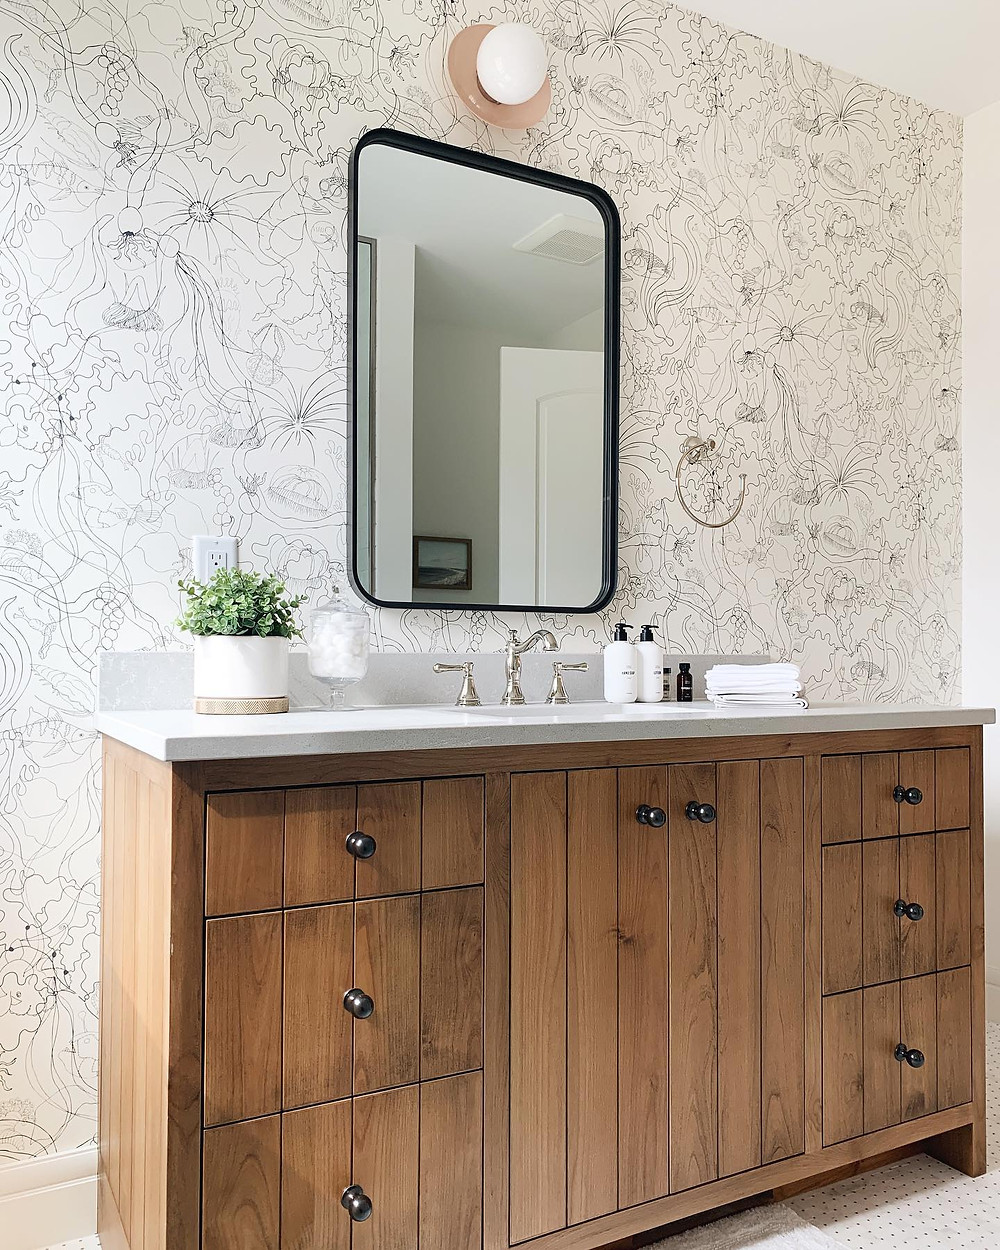 Pros and cons of quartz in your bathroom